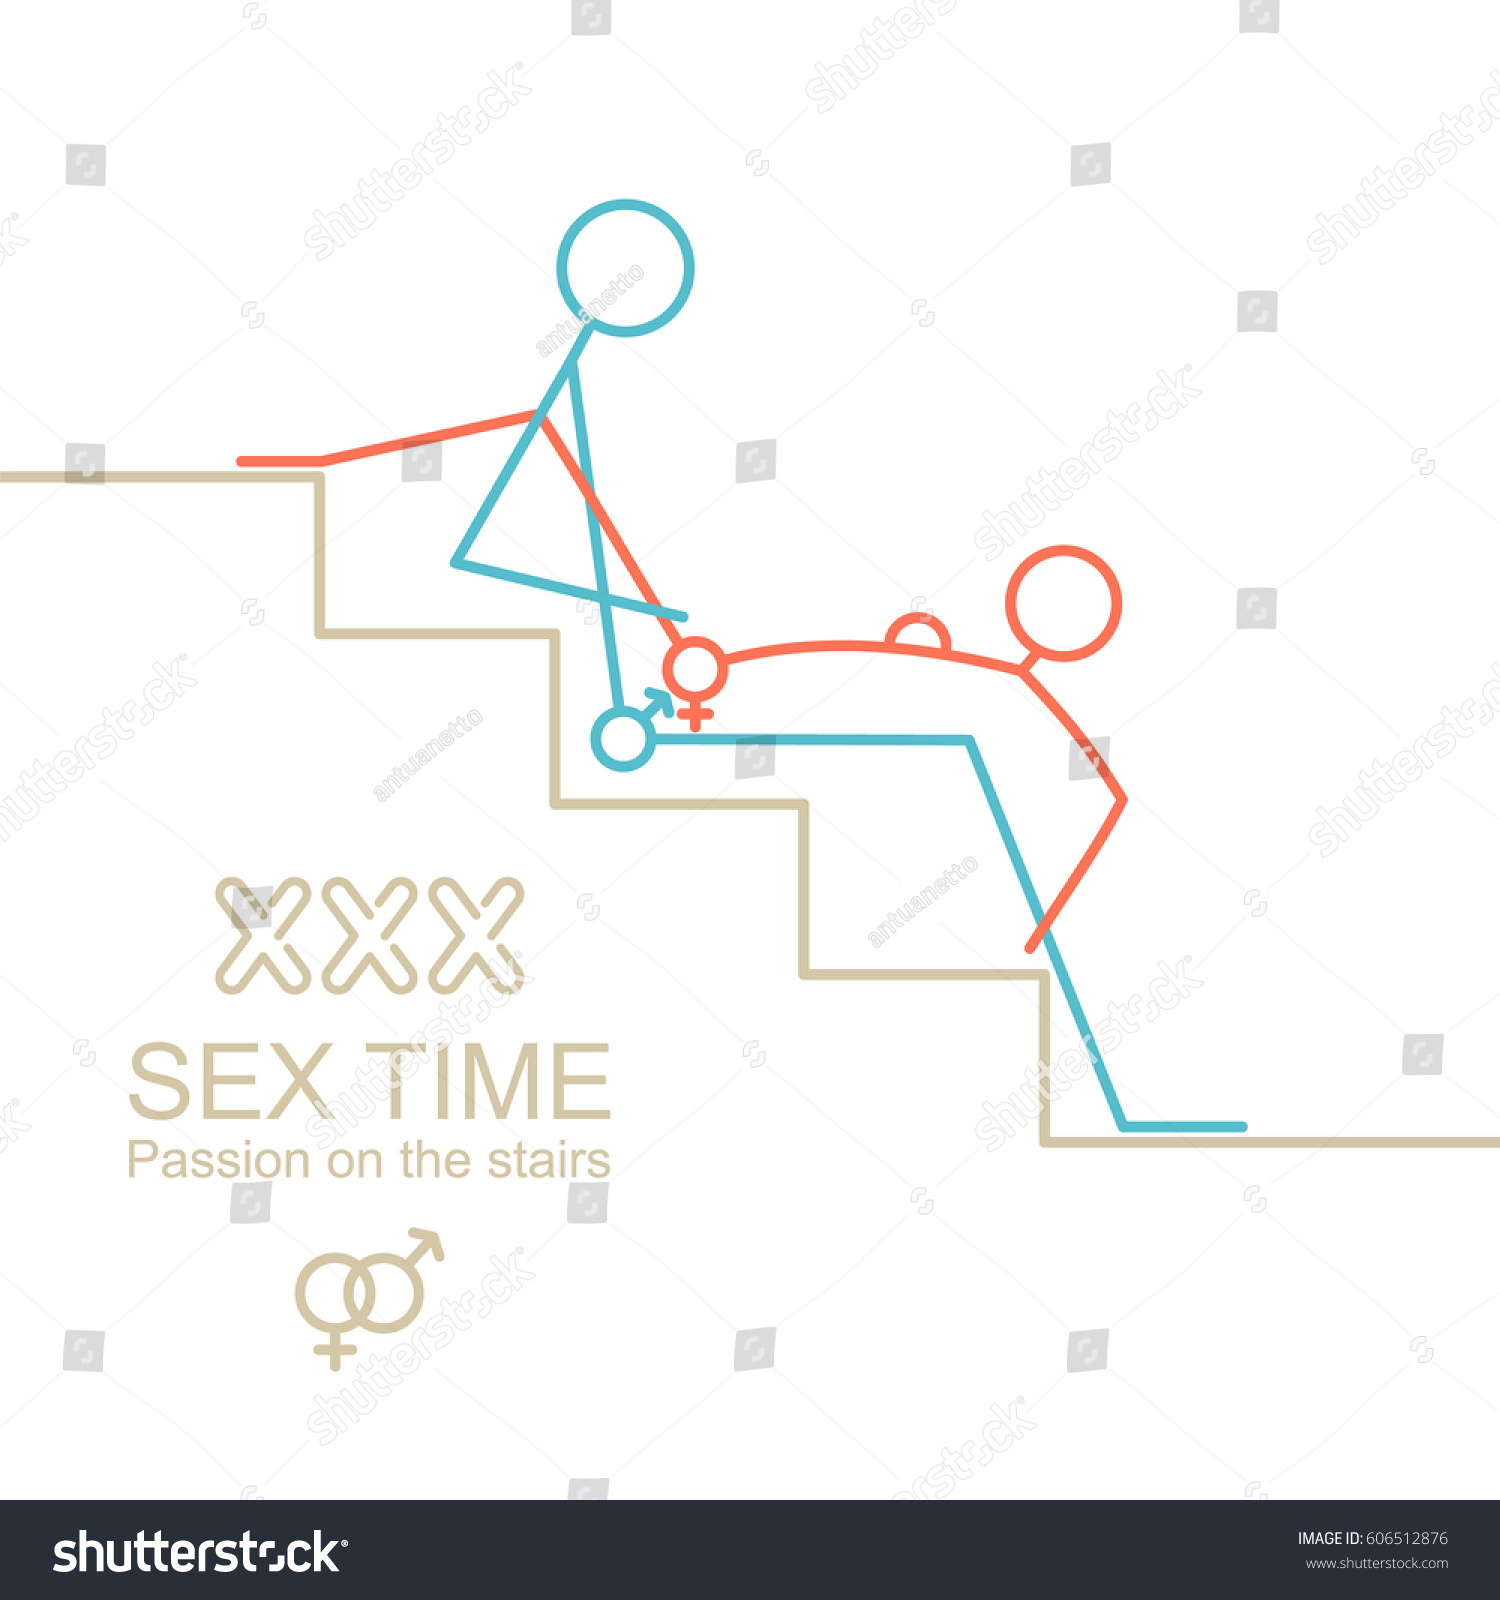 Idea and Style of position xxx that interestingly